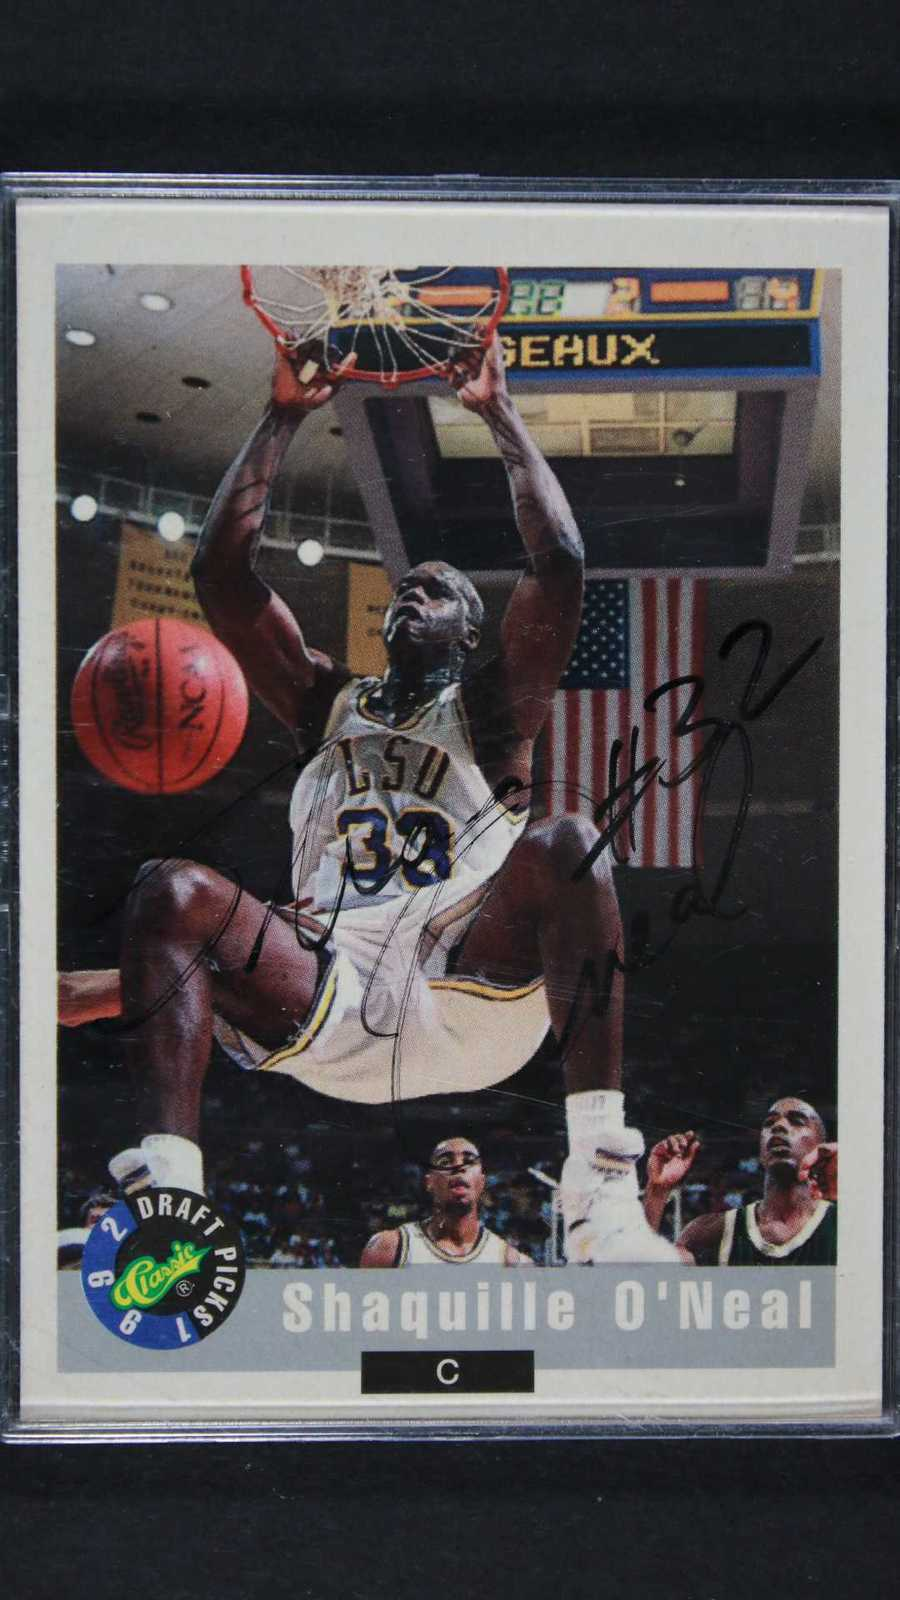 Shaquille O'Neal Signed Autographed 1992 Classic Rookie Basketball Card - LSU Ti